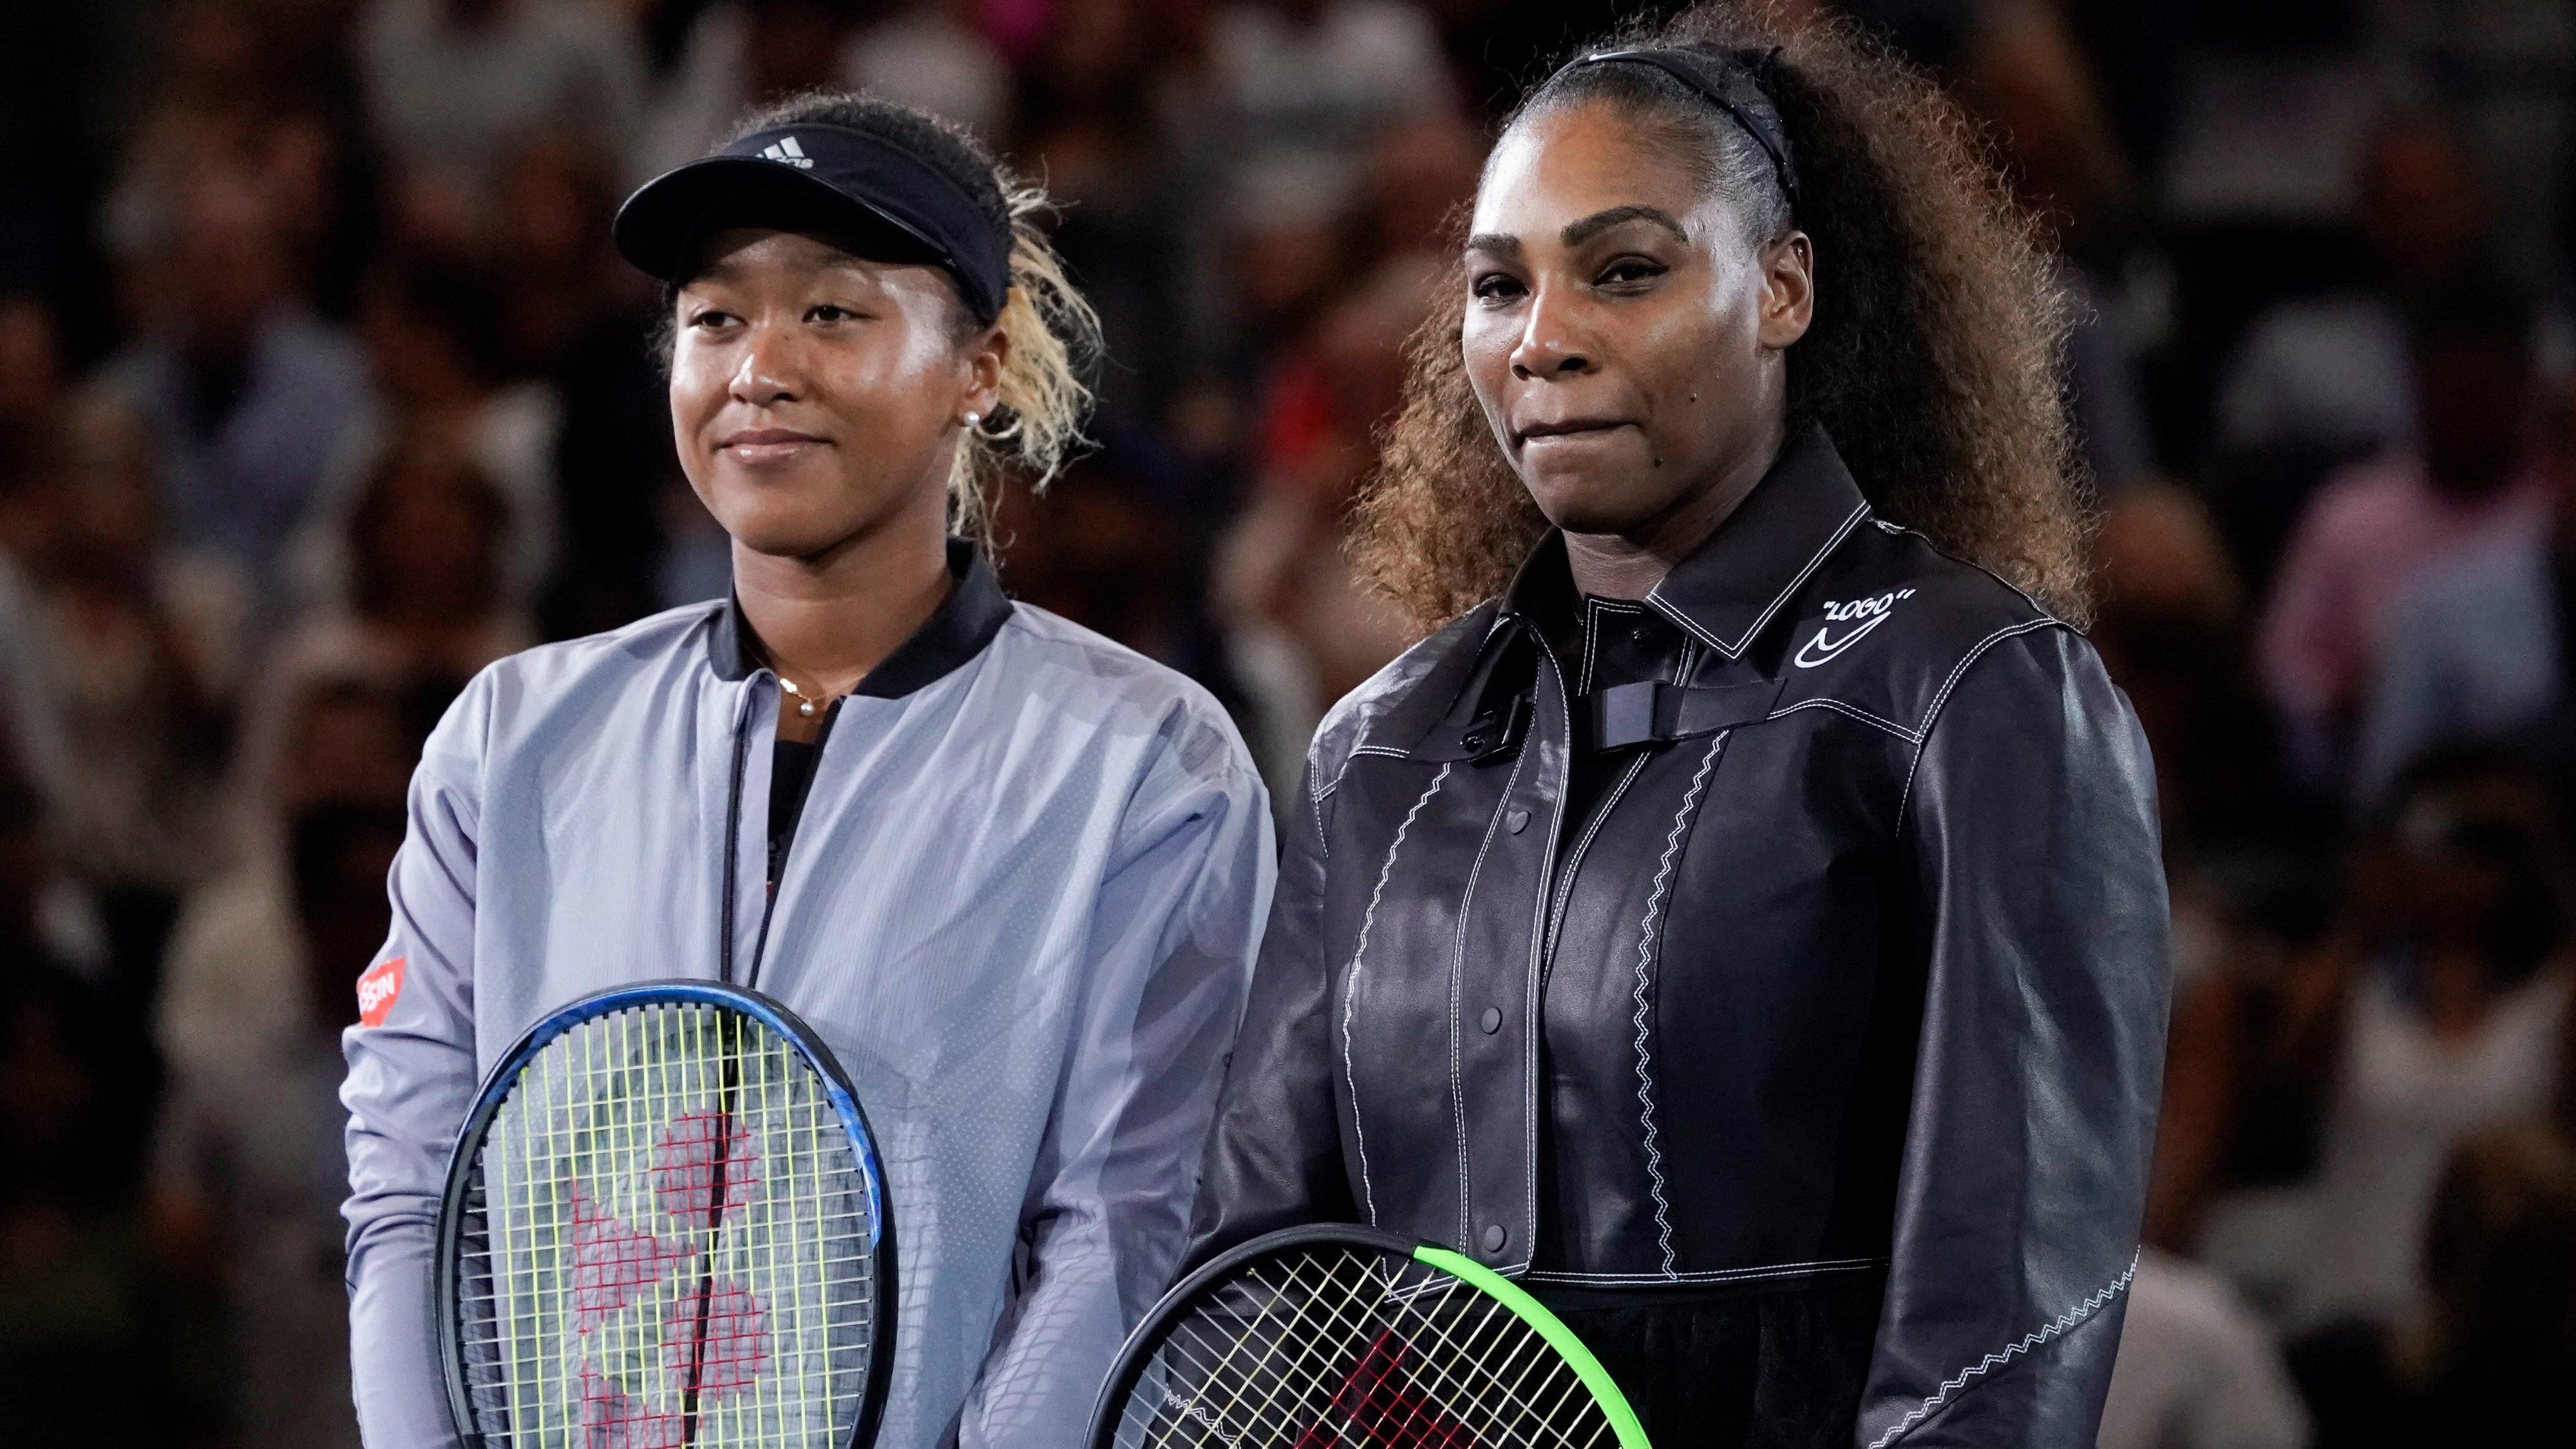 Serena Williams is defeated at the US Open by Naomi Osaka — Quartz